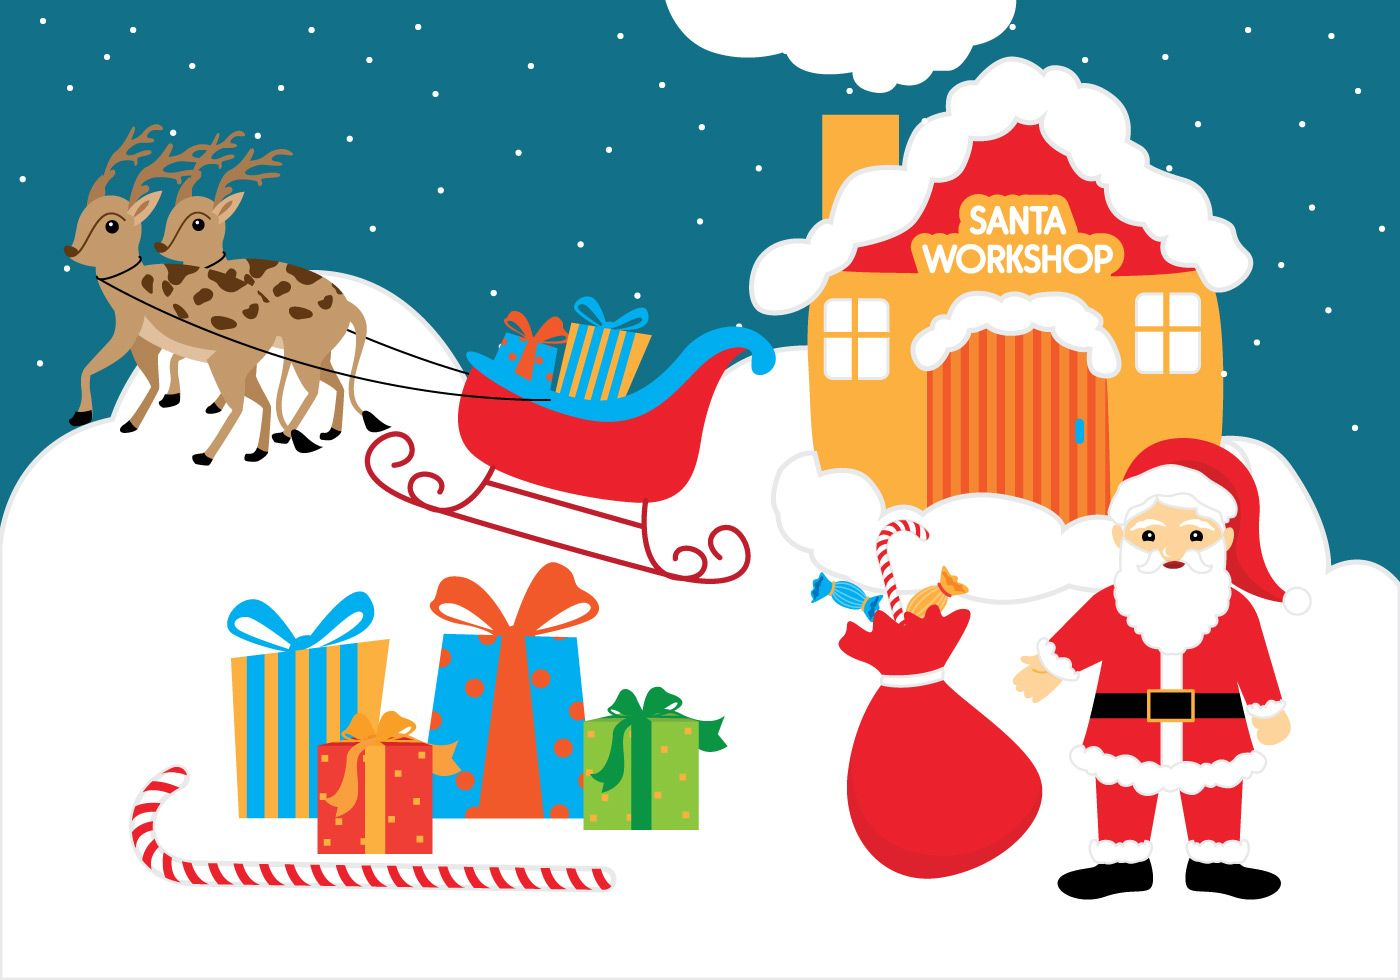 Santa\'s workshop with some gifts accompanied by his reindeer.